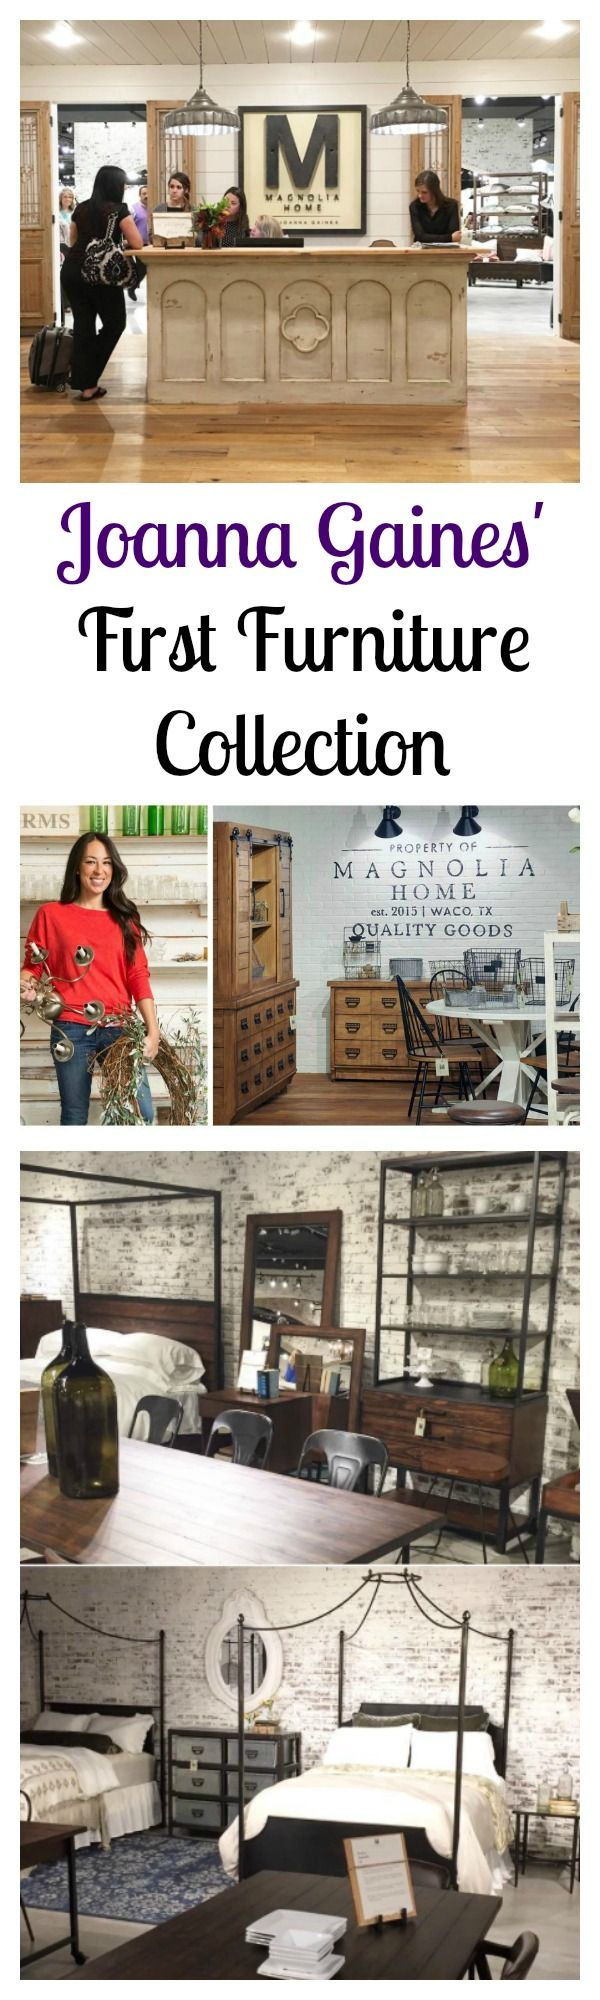 Joanna Gaines' First Home Furniture Collection is More Beautiful Than You Ever Imagined